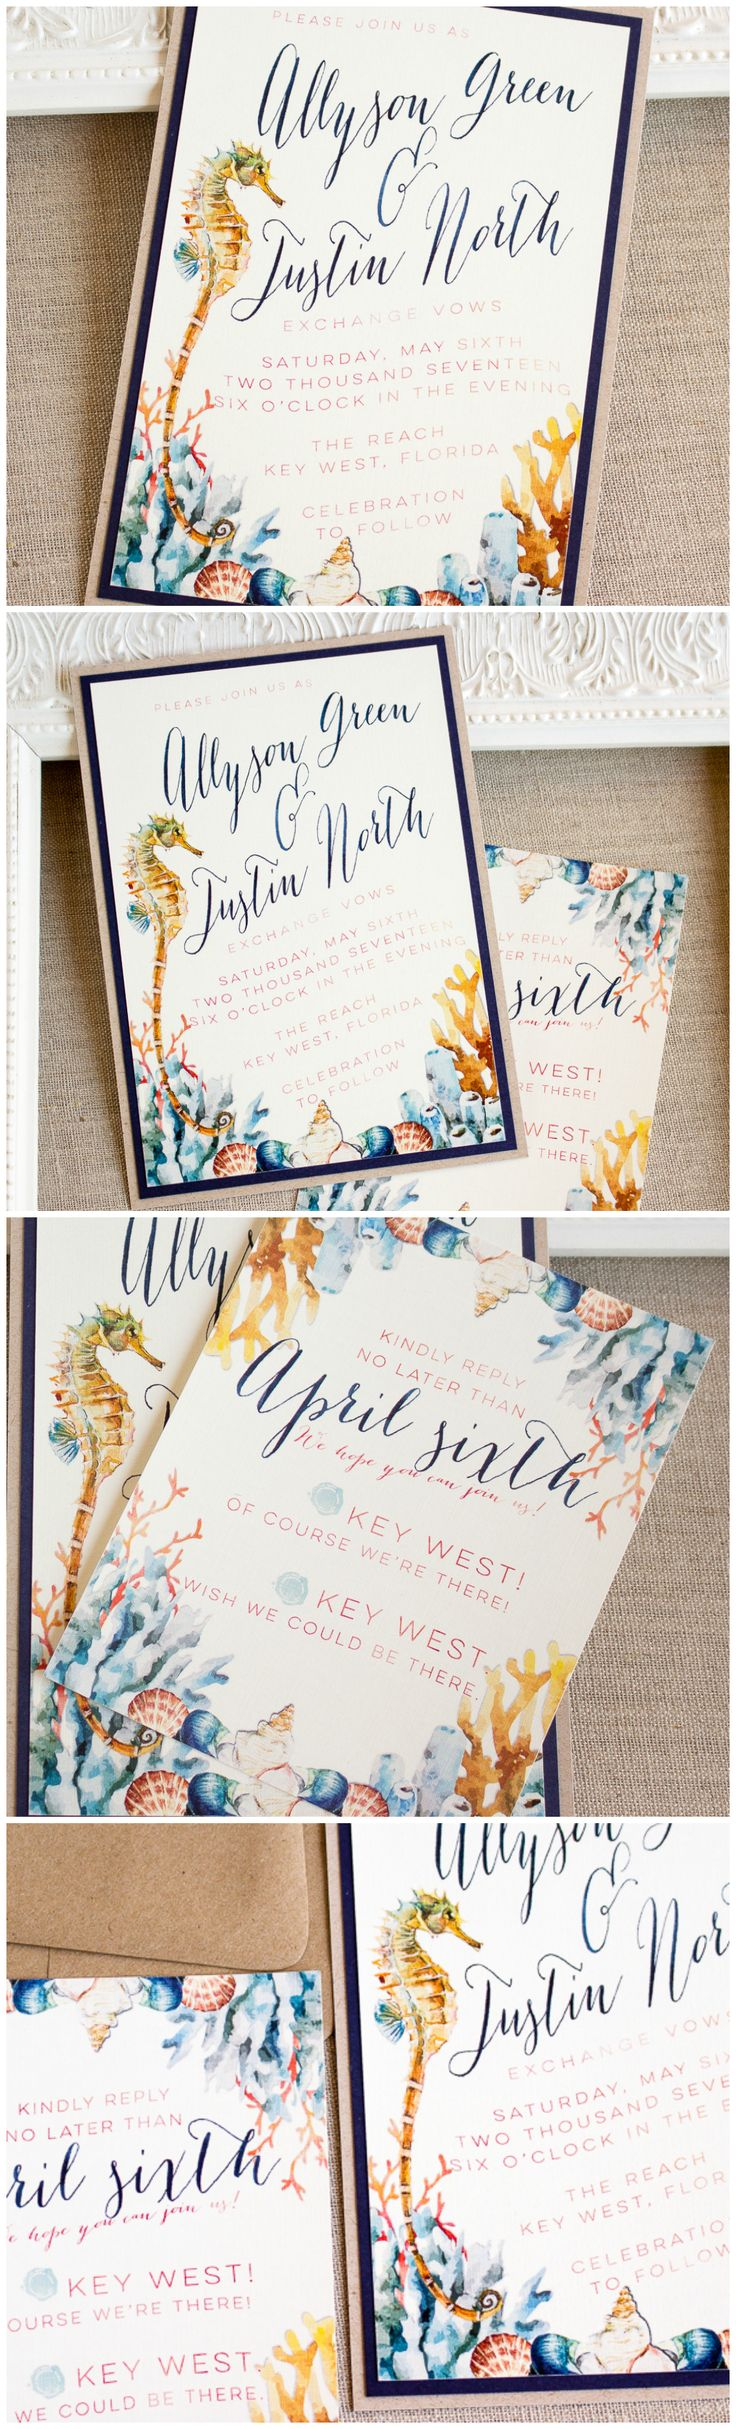 Watercolor Seahorse Wedding Invitation